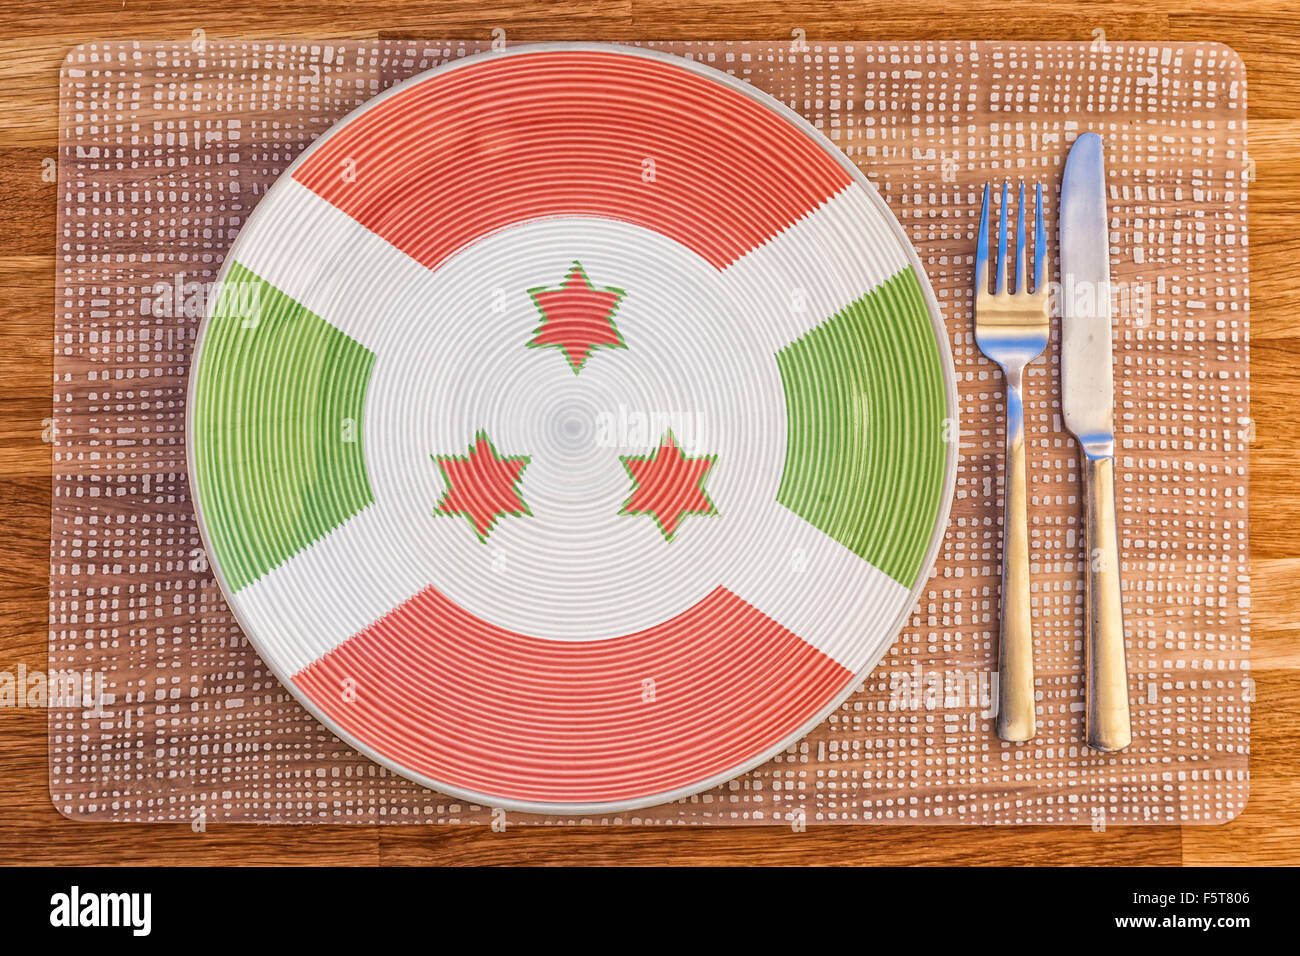 Dinner plate with the flag of Burundi on it for your international food and drink concepts. - Stock Image